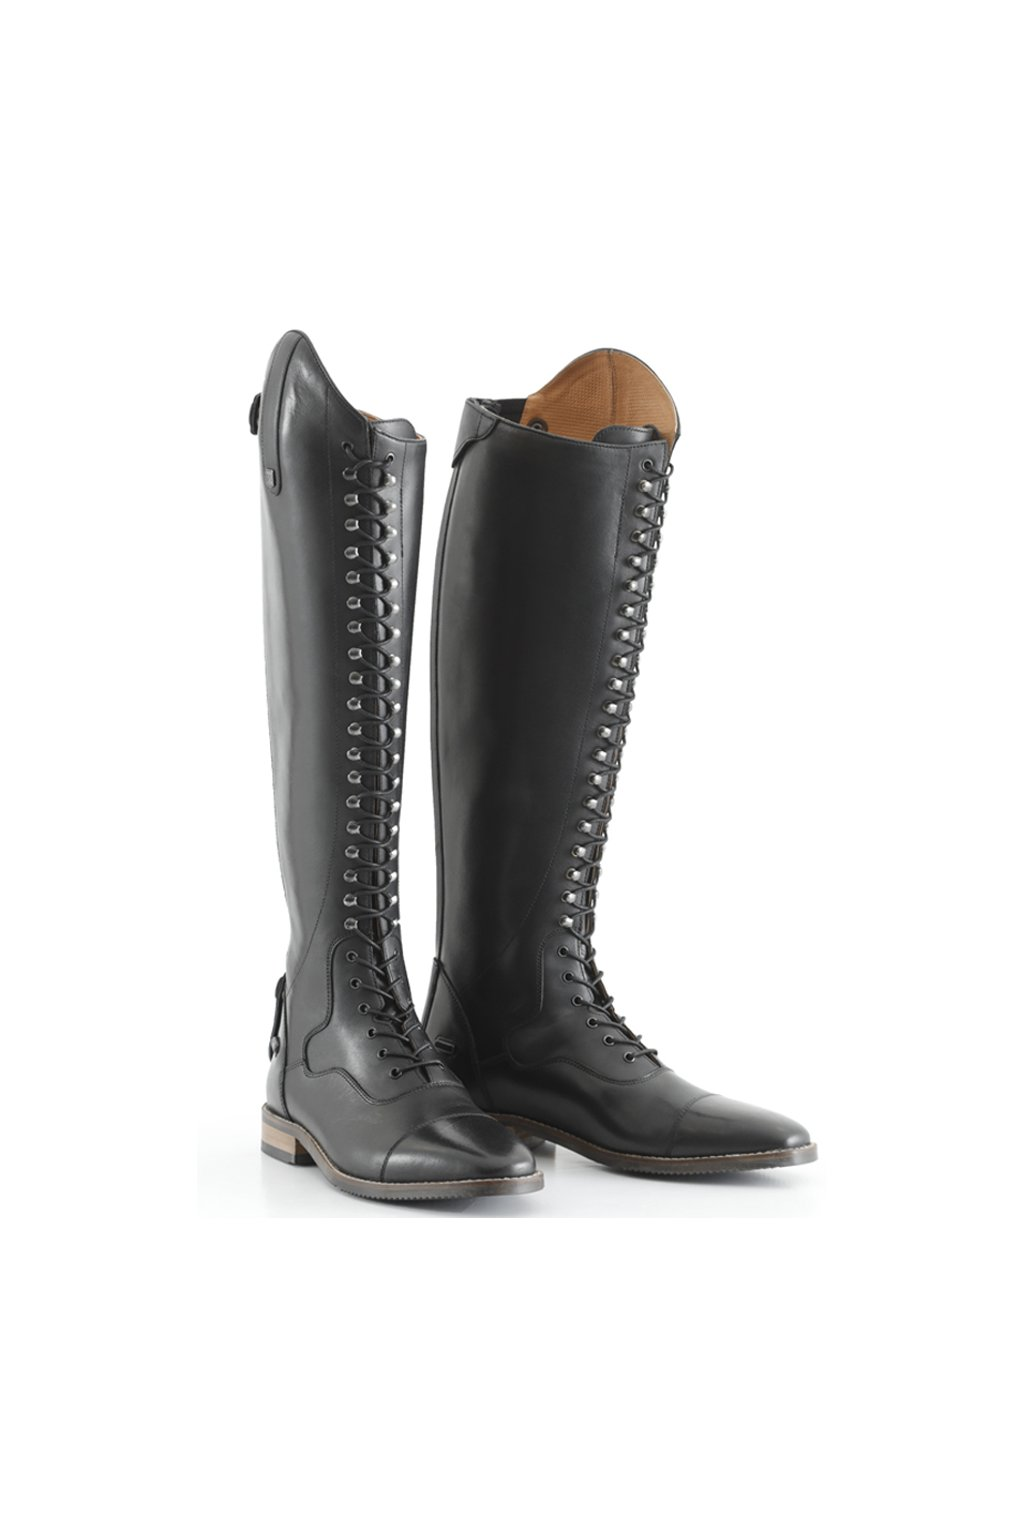 SS20 Maurizia Ladies Lace Front Long Leather Riding Boots Black Main Shot 72